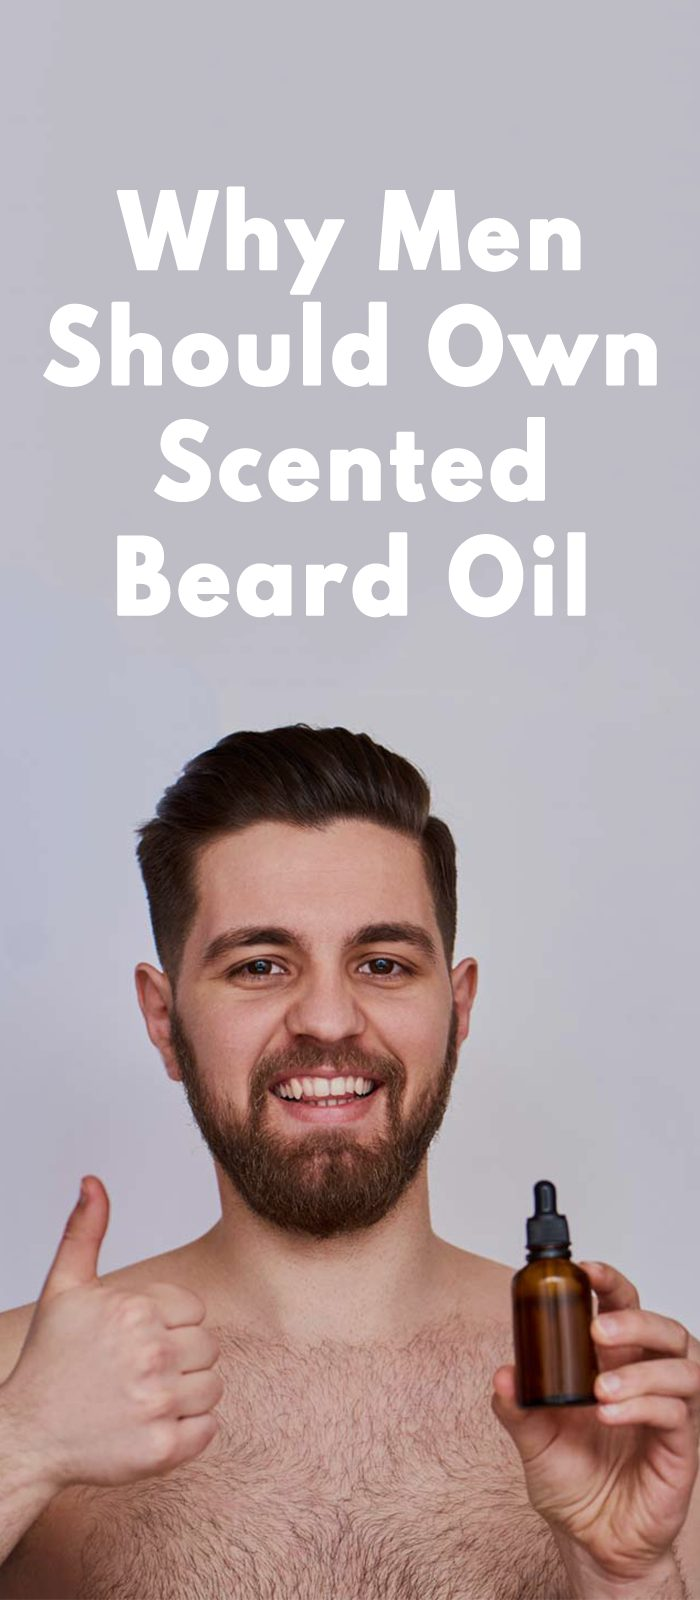 Why Men Should Own Scented Beard Oil